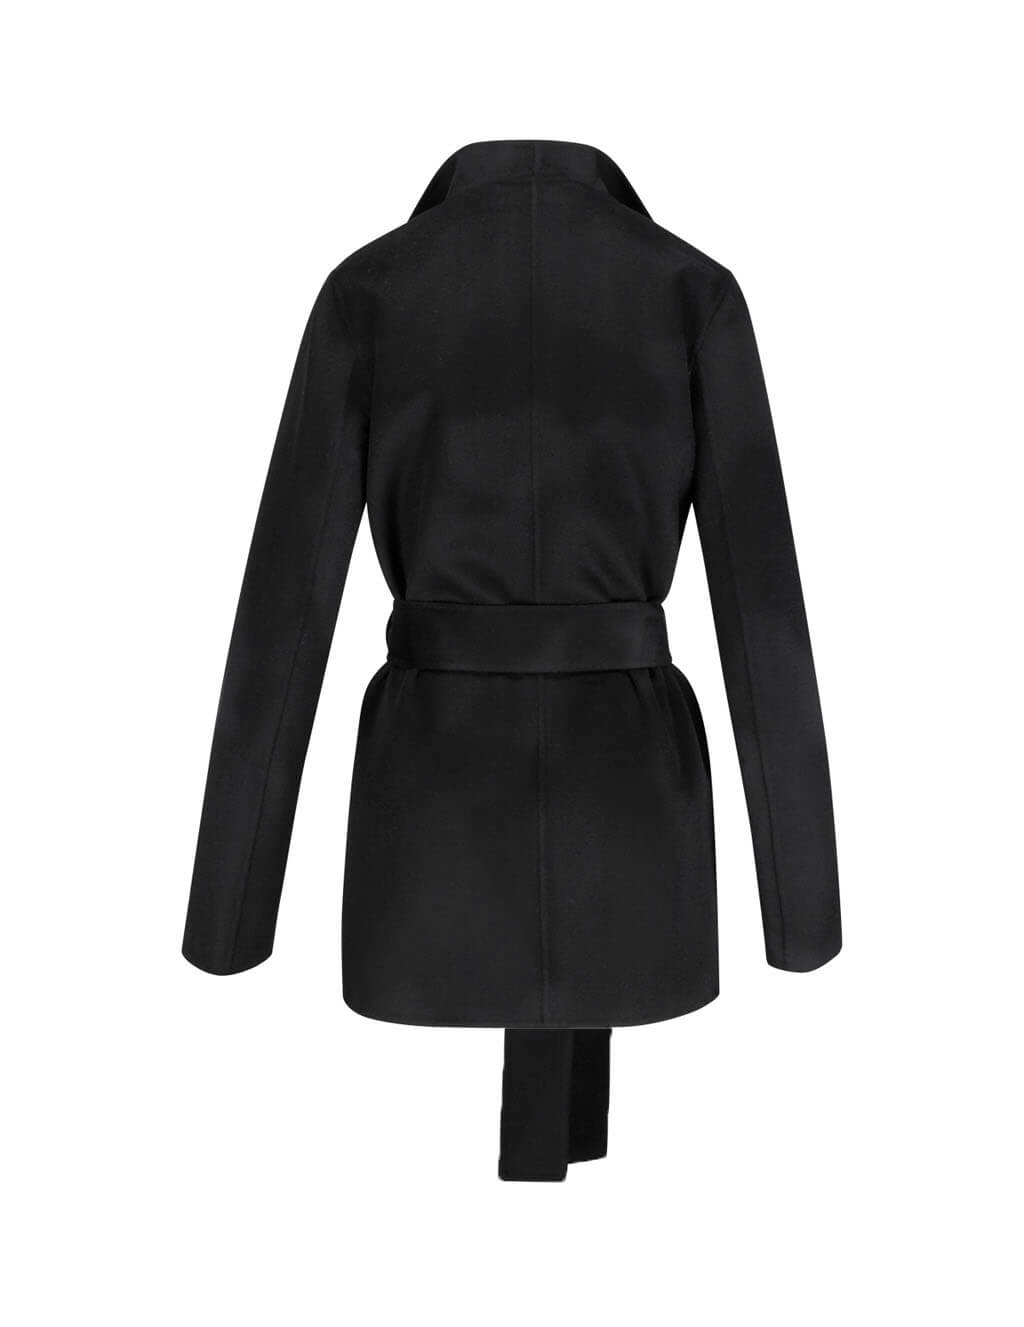 JOSEPH Women's Giulio Fashion Black Lima Coat JF004000_0010